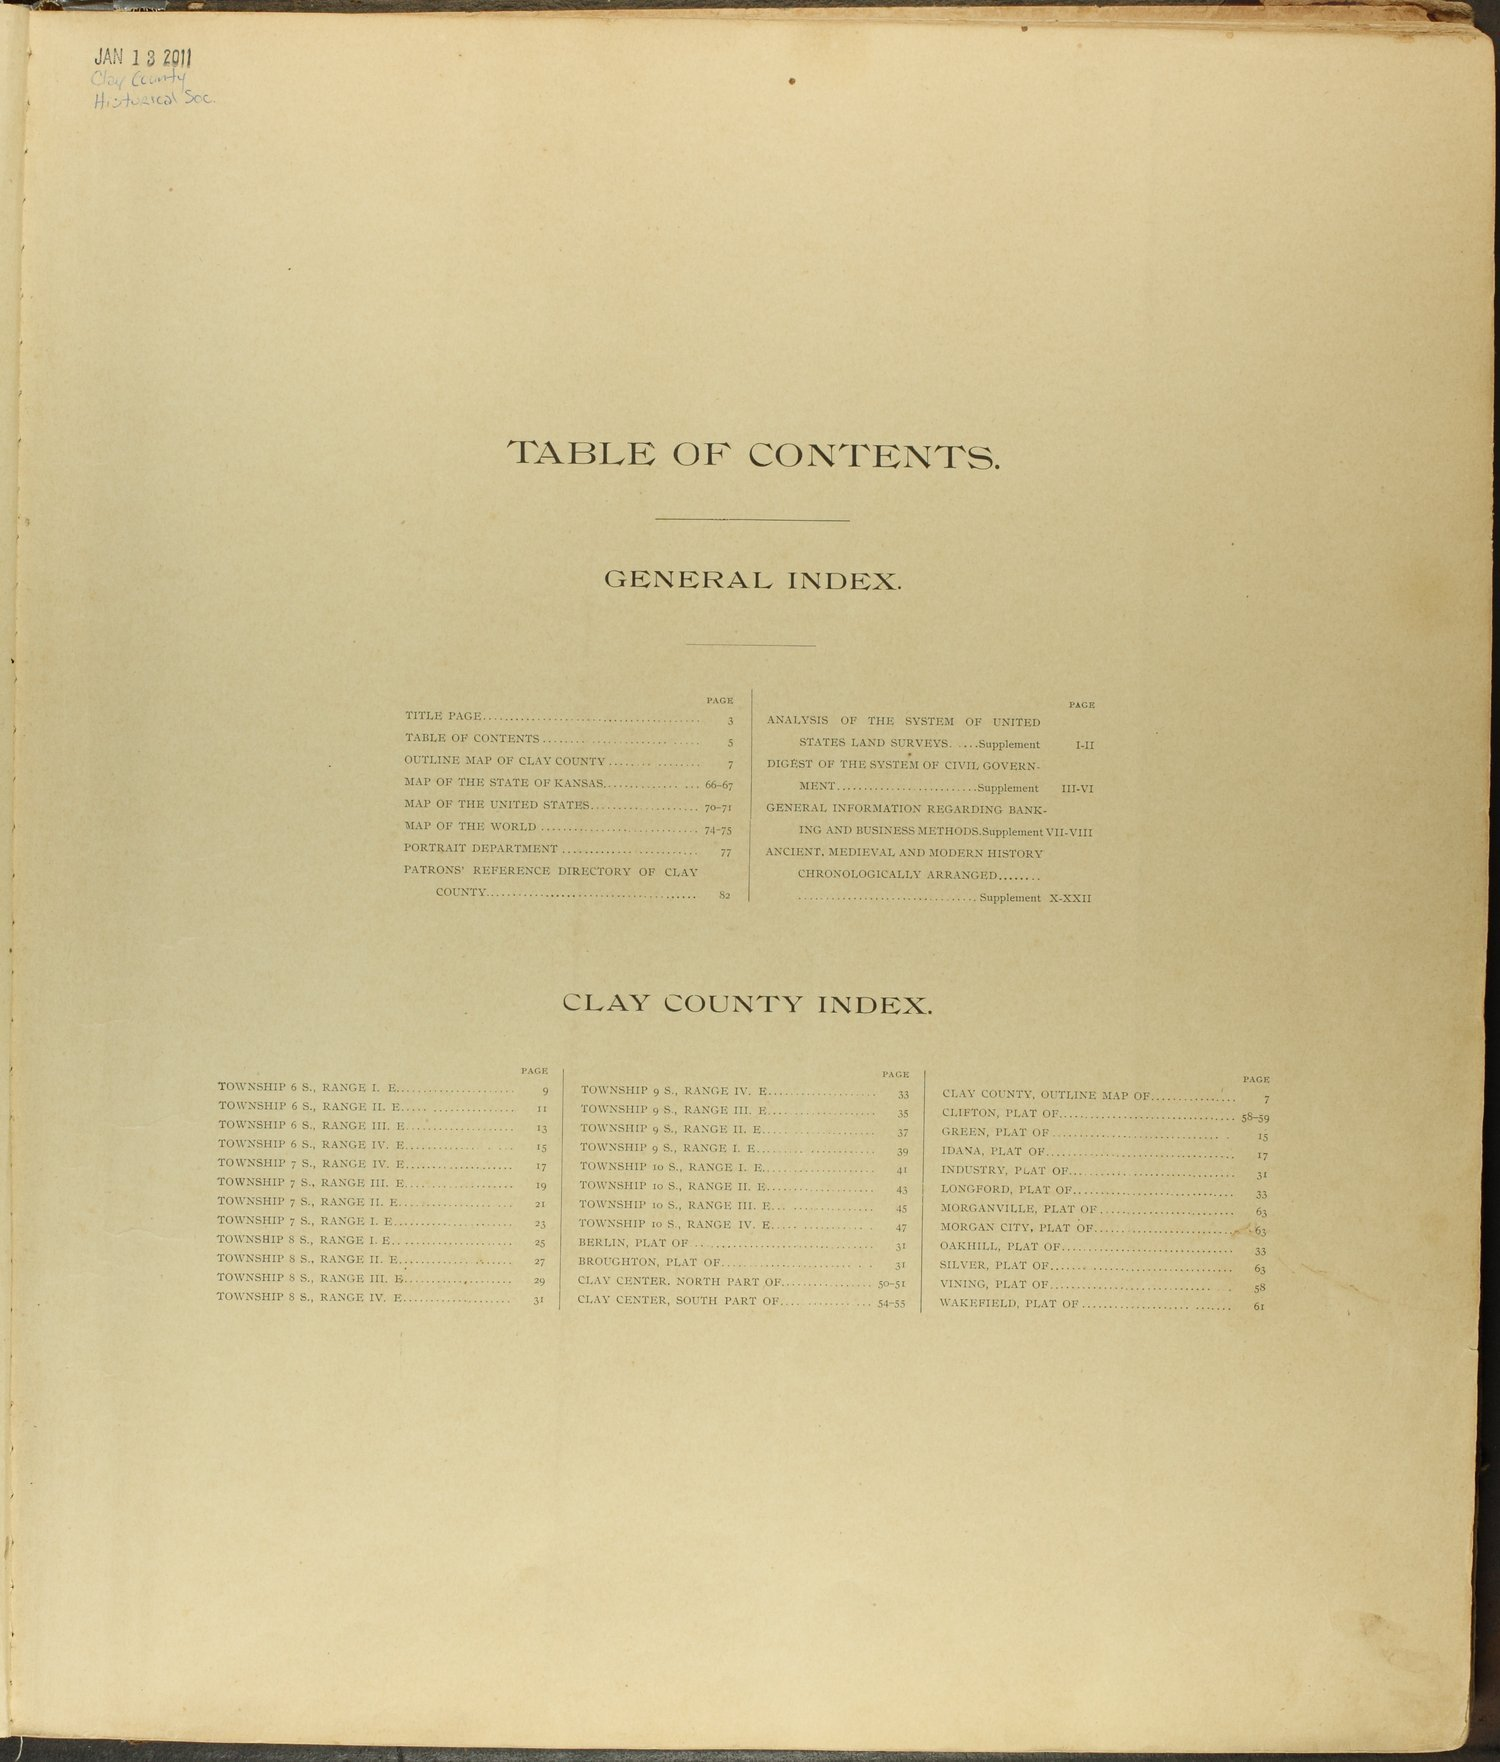 Standard atlas of Clay County, Kansas - Table of Contents